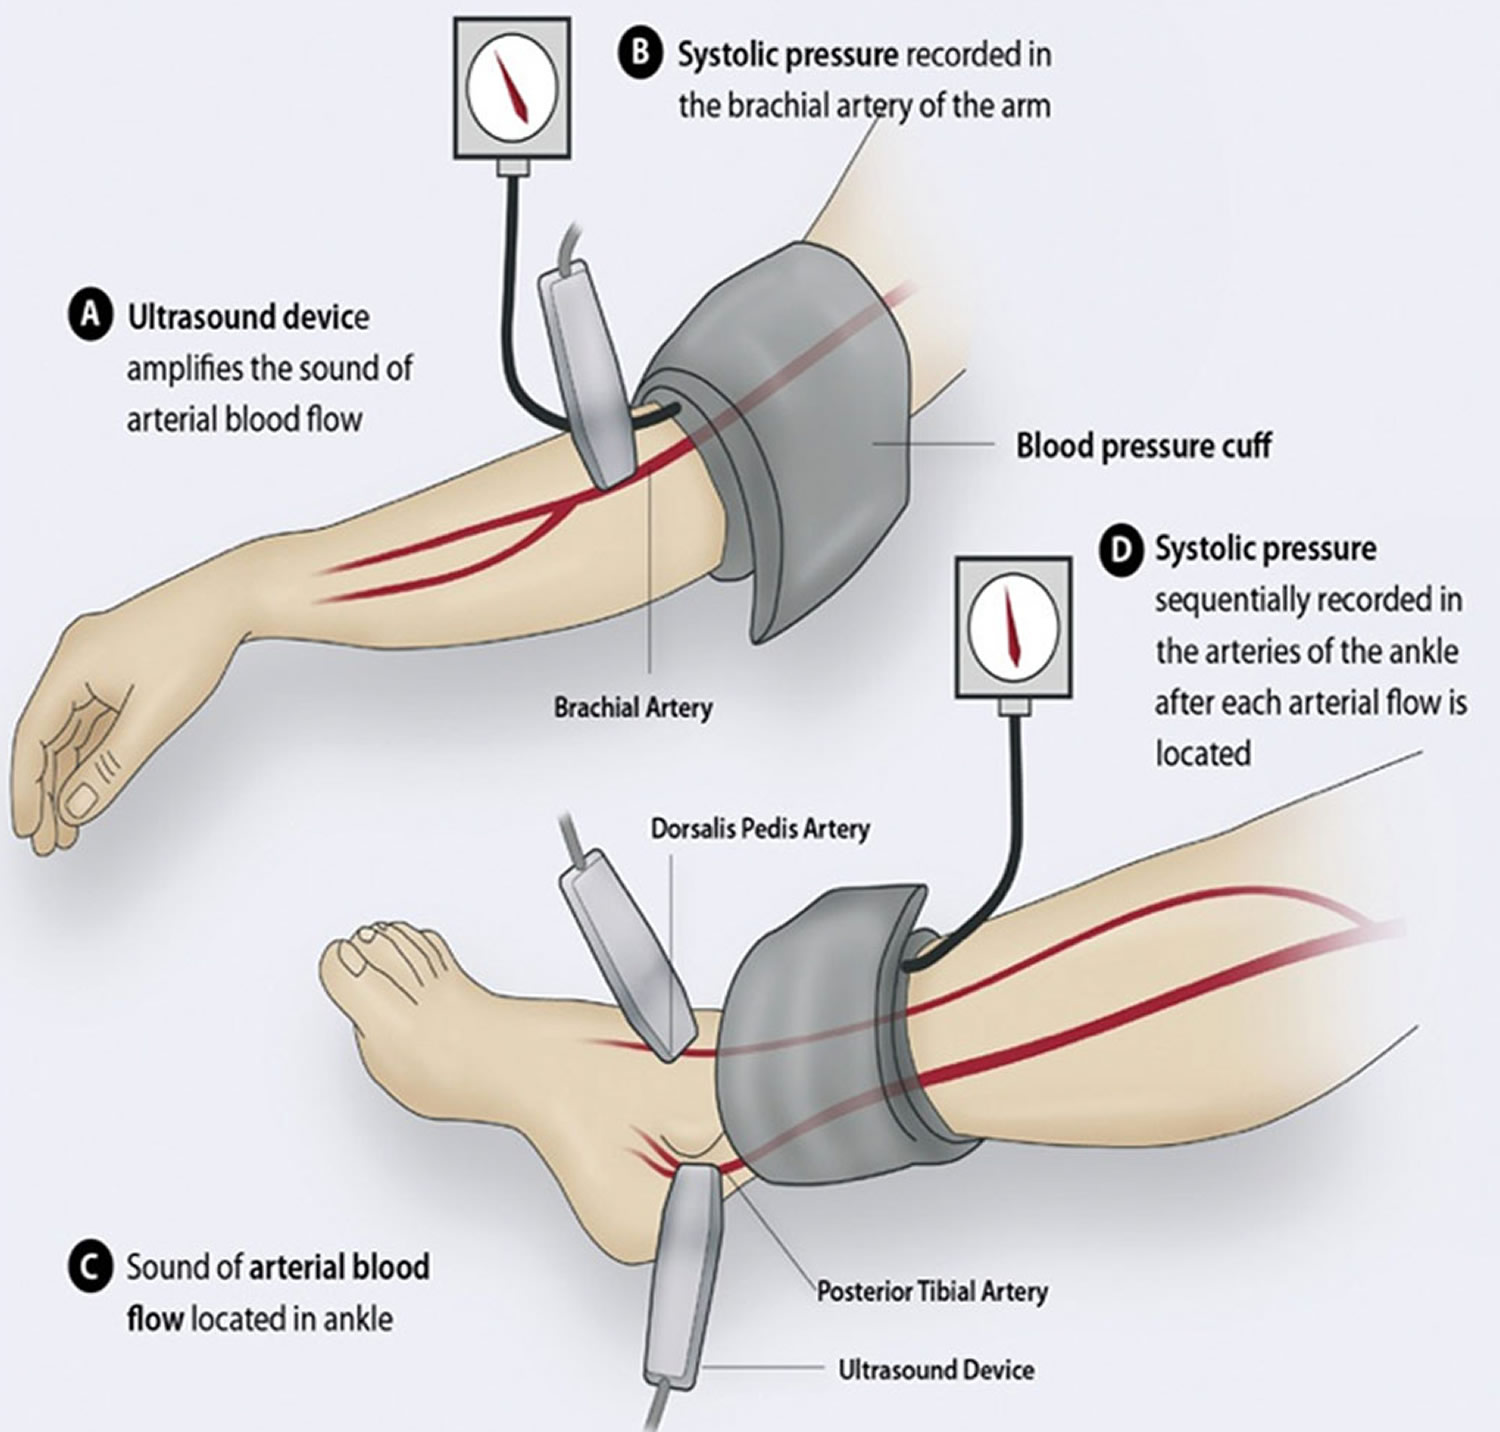 Peripheral Artery Disease - Causes, Symptoms & Treatment